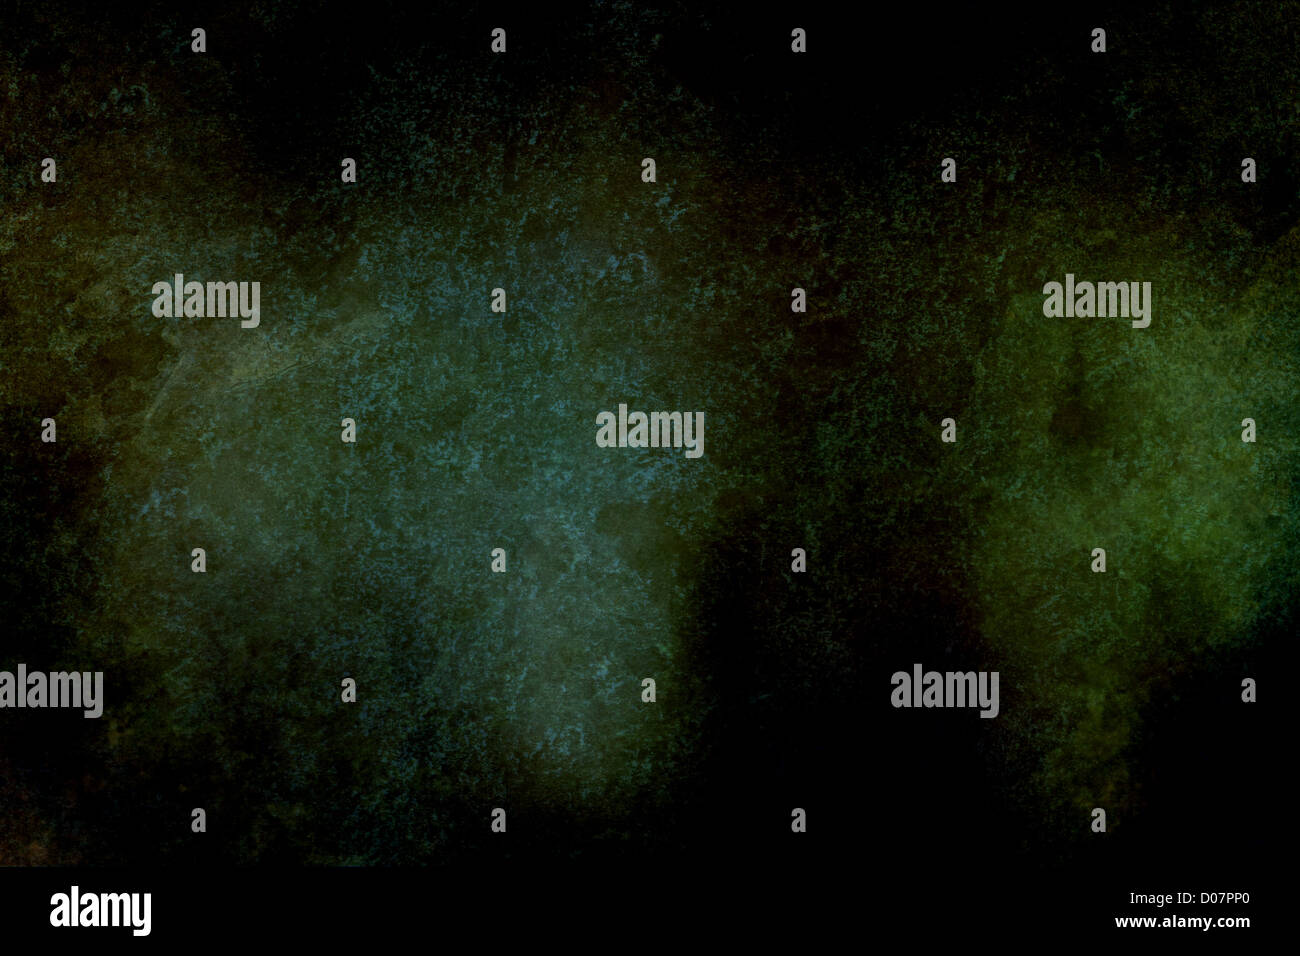 An eerie dark grunge texture or background with space for text or image. - Stock Image